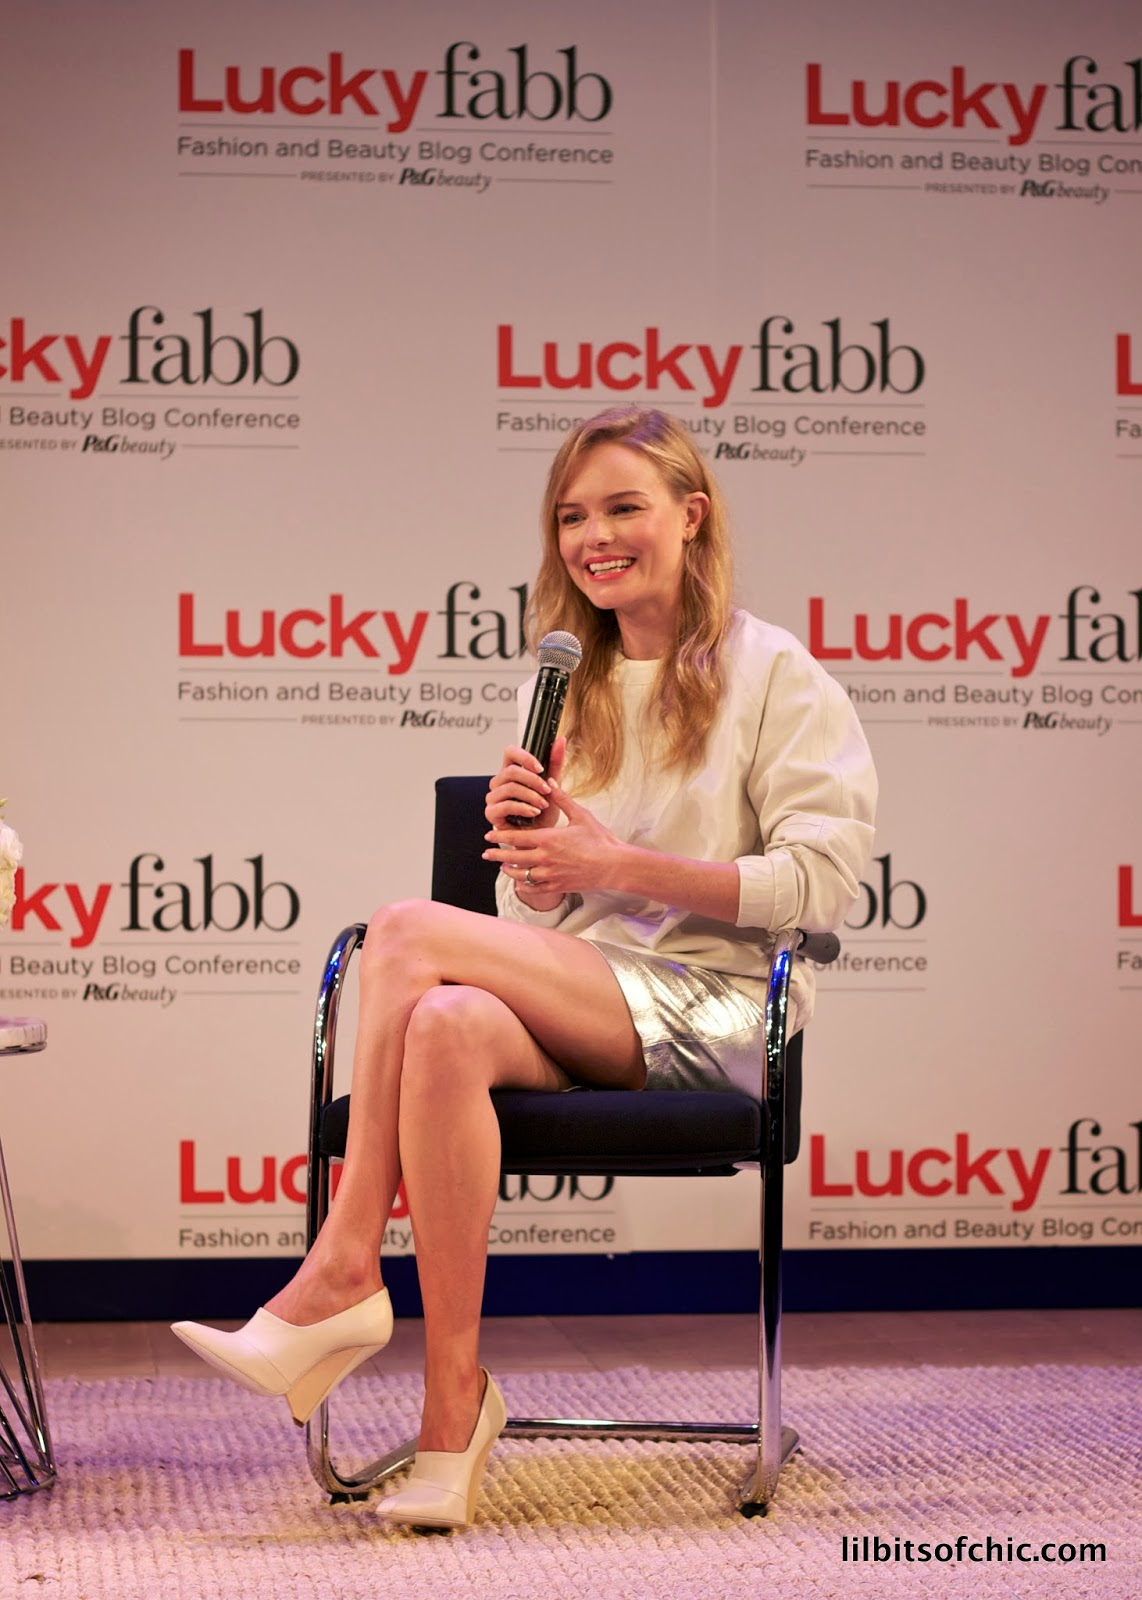 Kate Bosworth wearing Top shop at luckyfabb